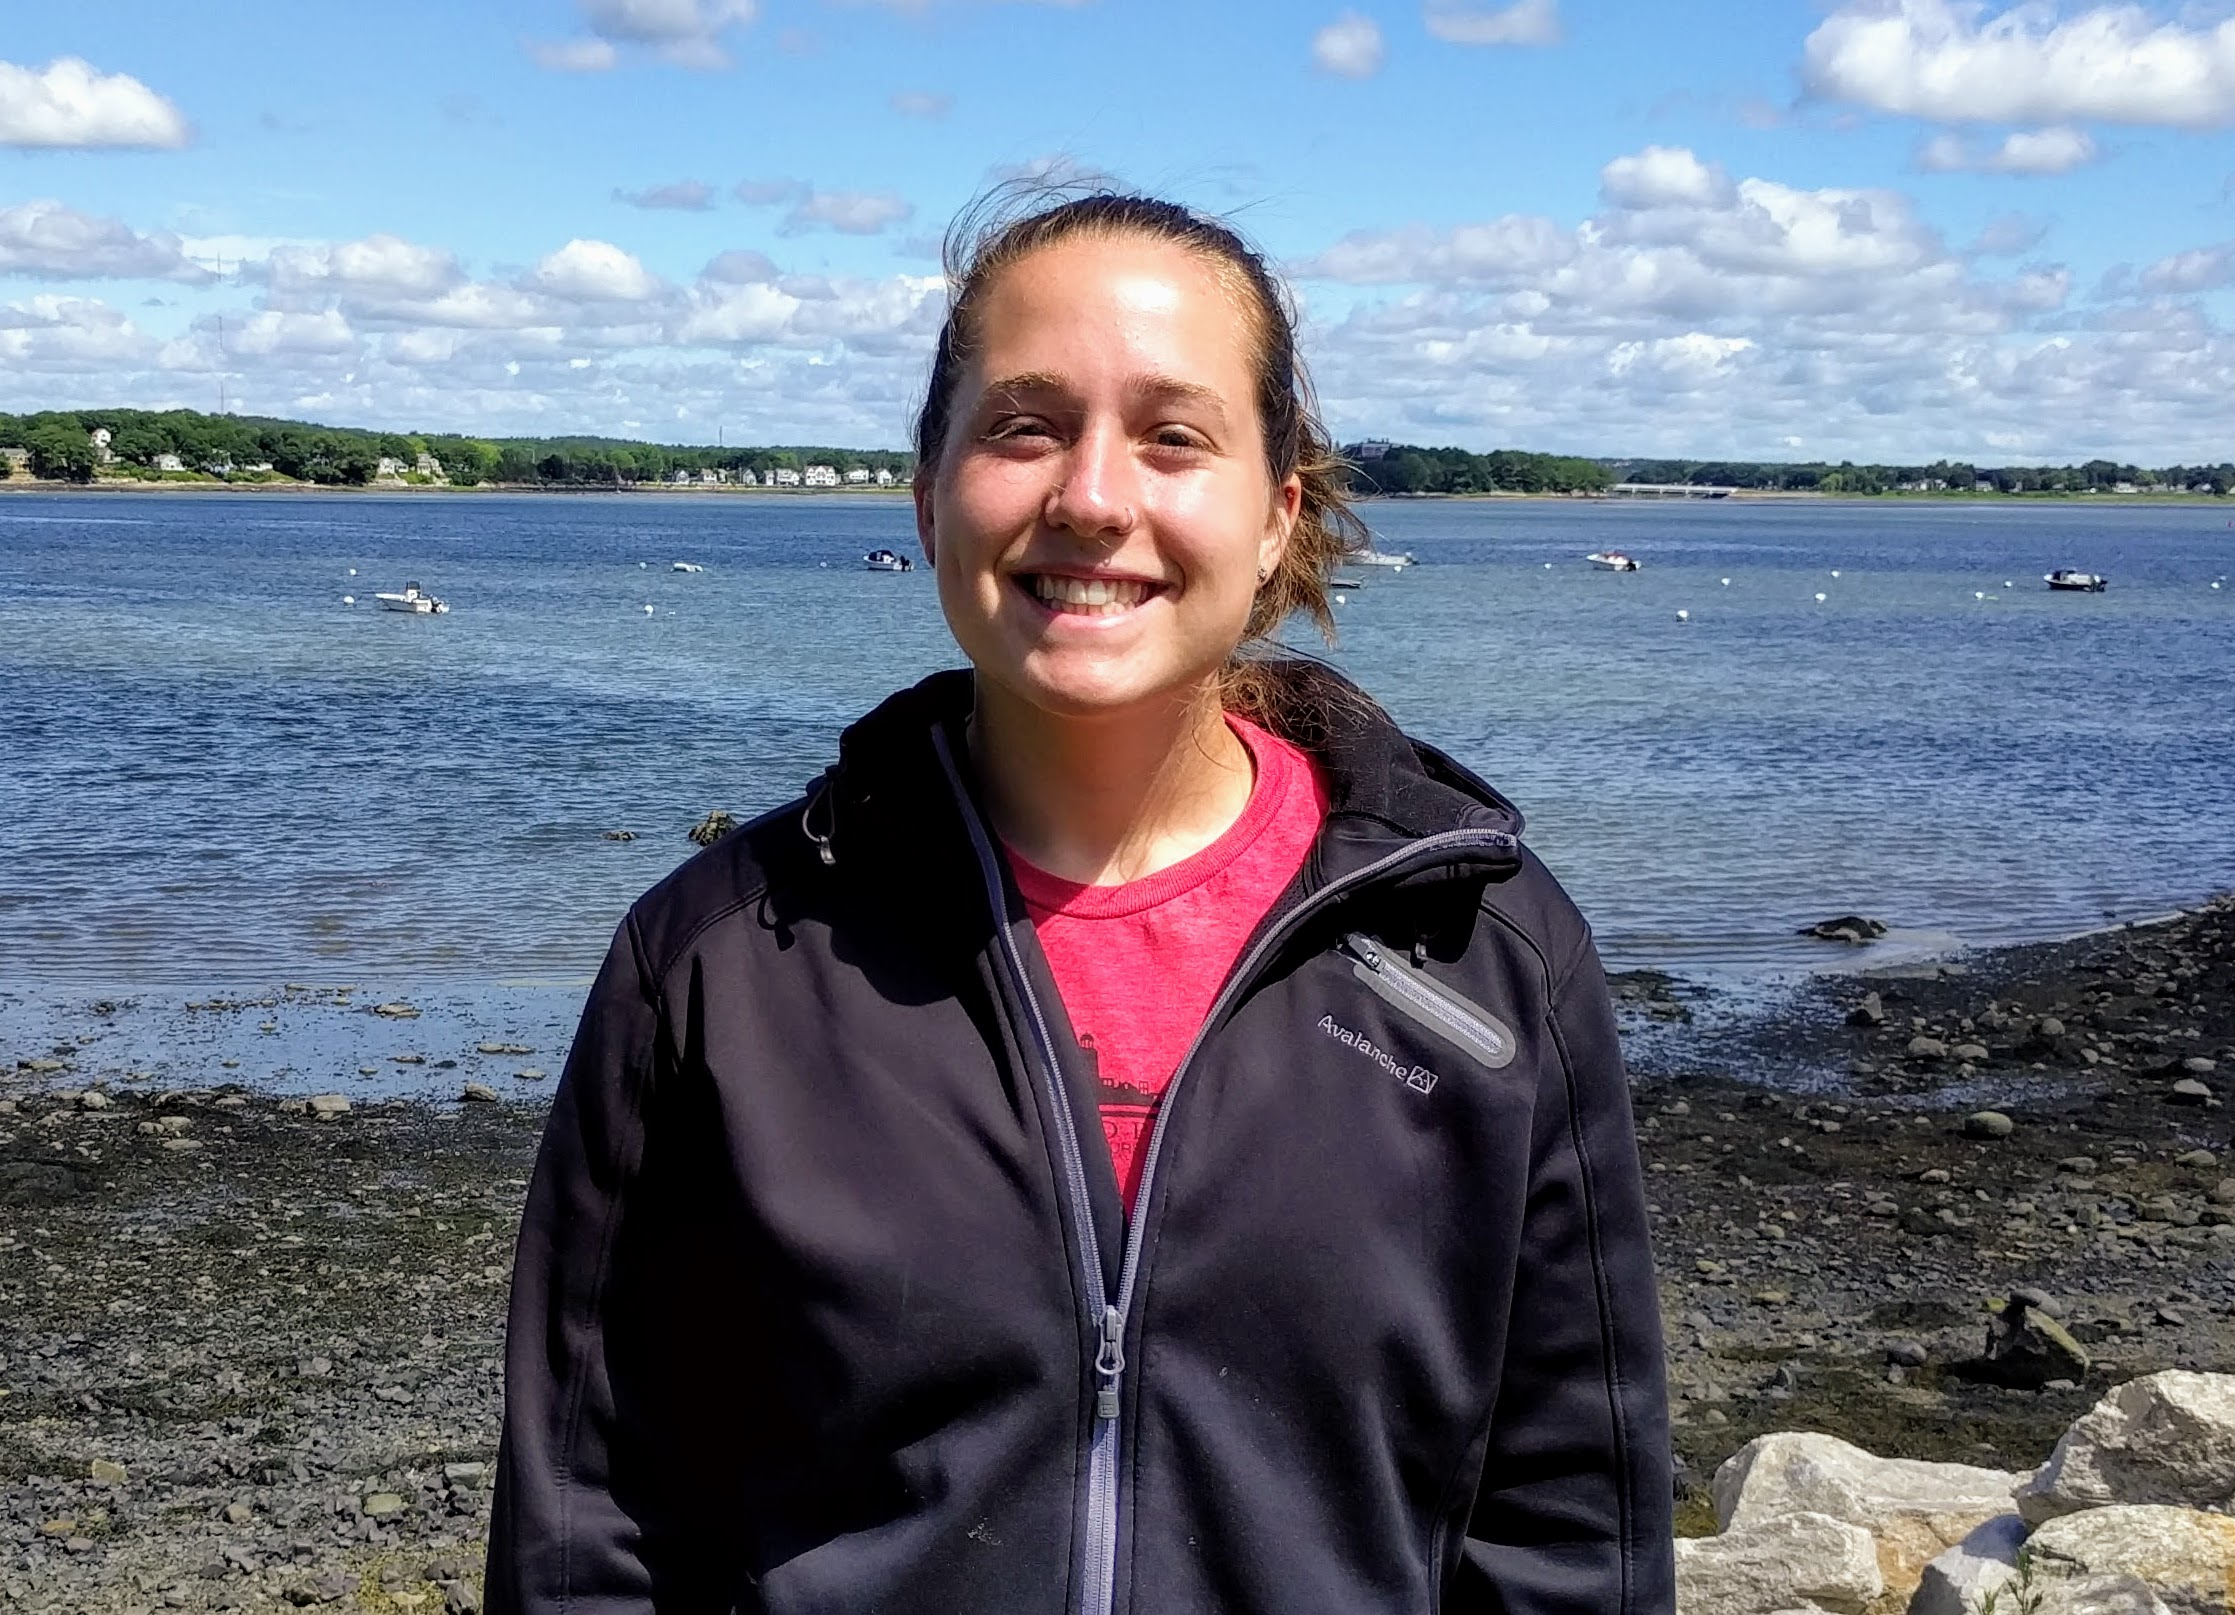 Emily Mooney - Emily is a Portland native who joined the shore staff team in 2016. She is currently studying physical education at the University of Maine with a minor in outdoor recreation.